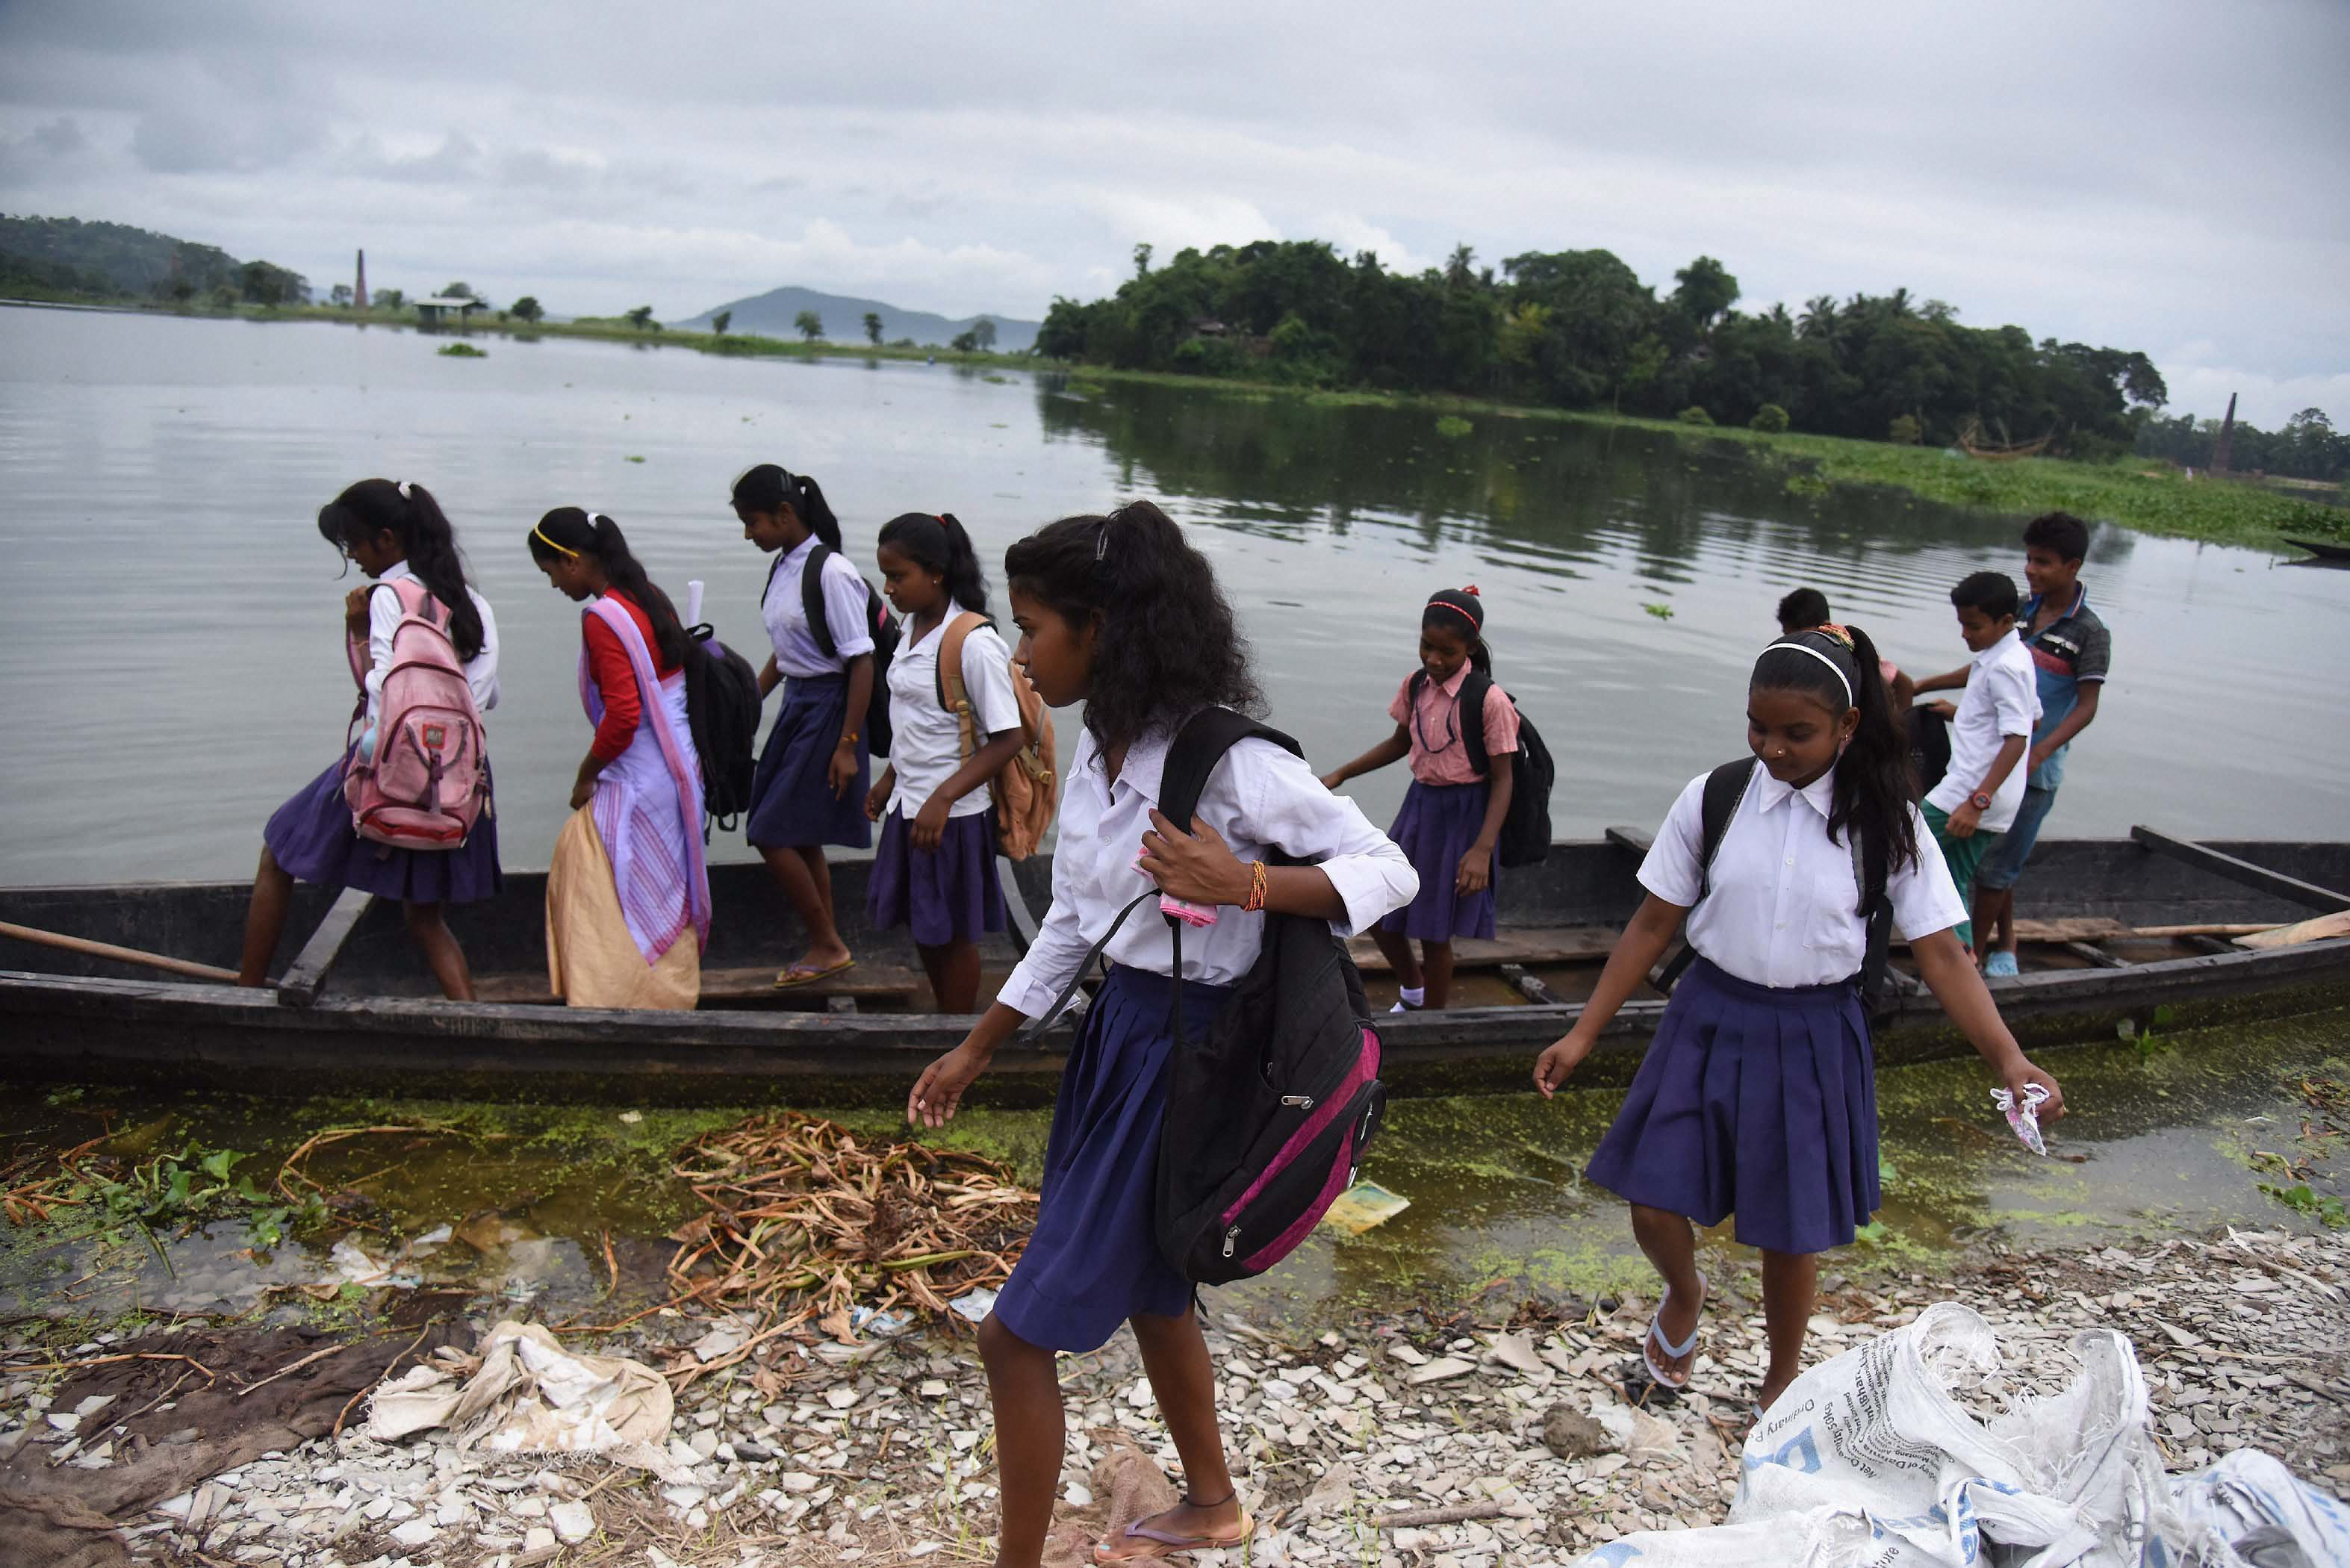 Guwahati: School girls travel cross a flooded area by boat at Rajbari village on the ourskirts of Guwahati on Saturday. PTI Photo(PTI7_1_2017_000154B)